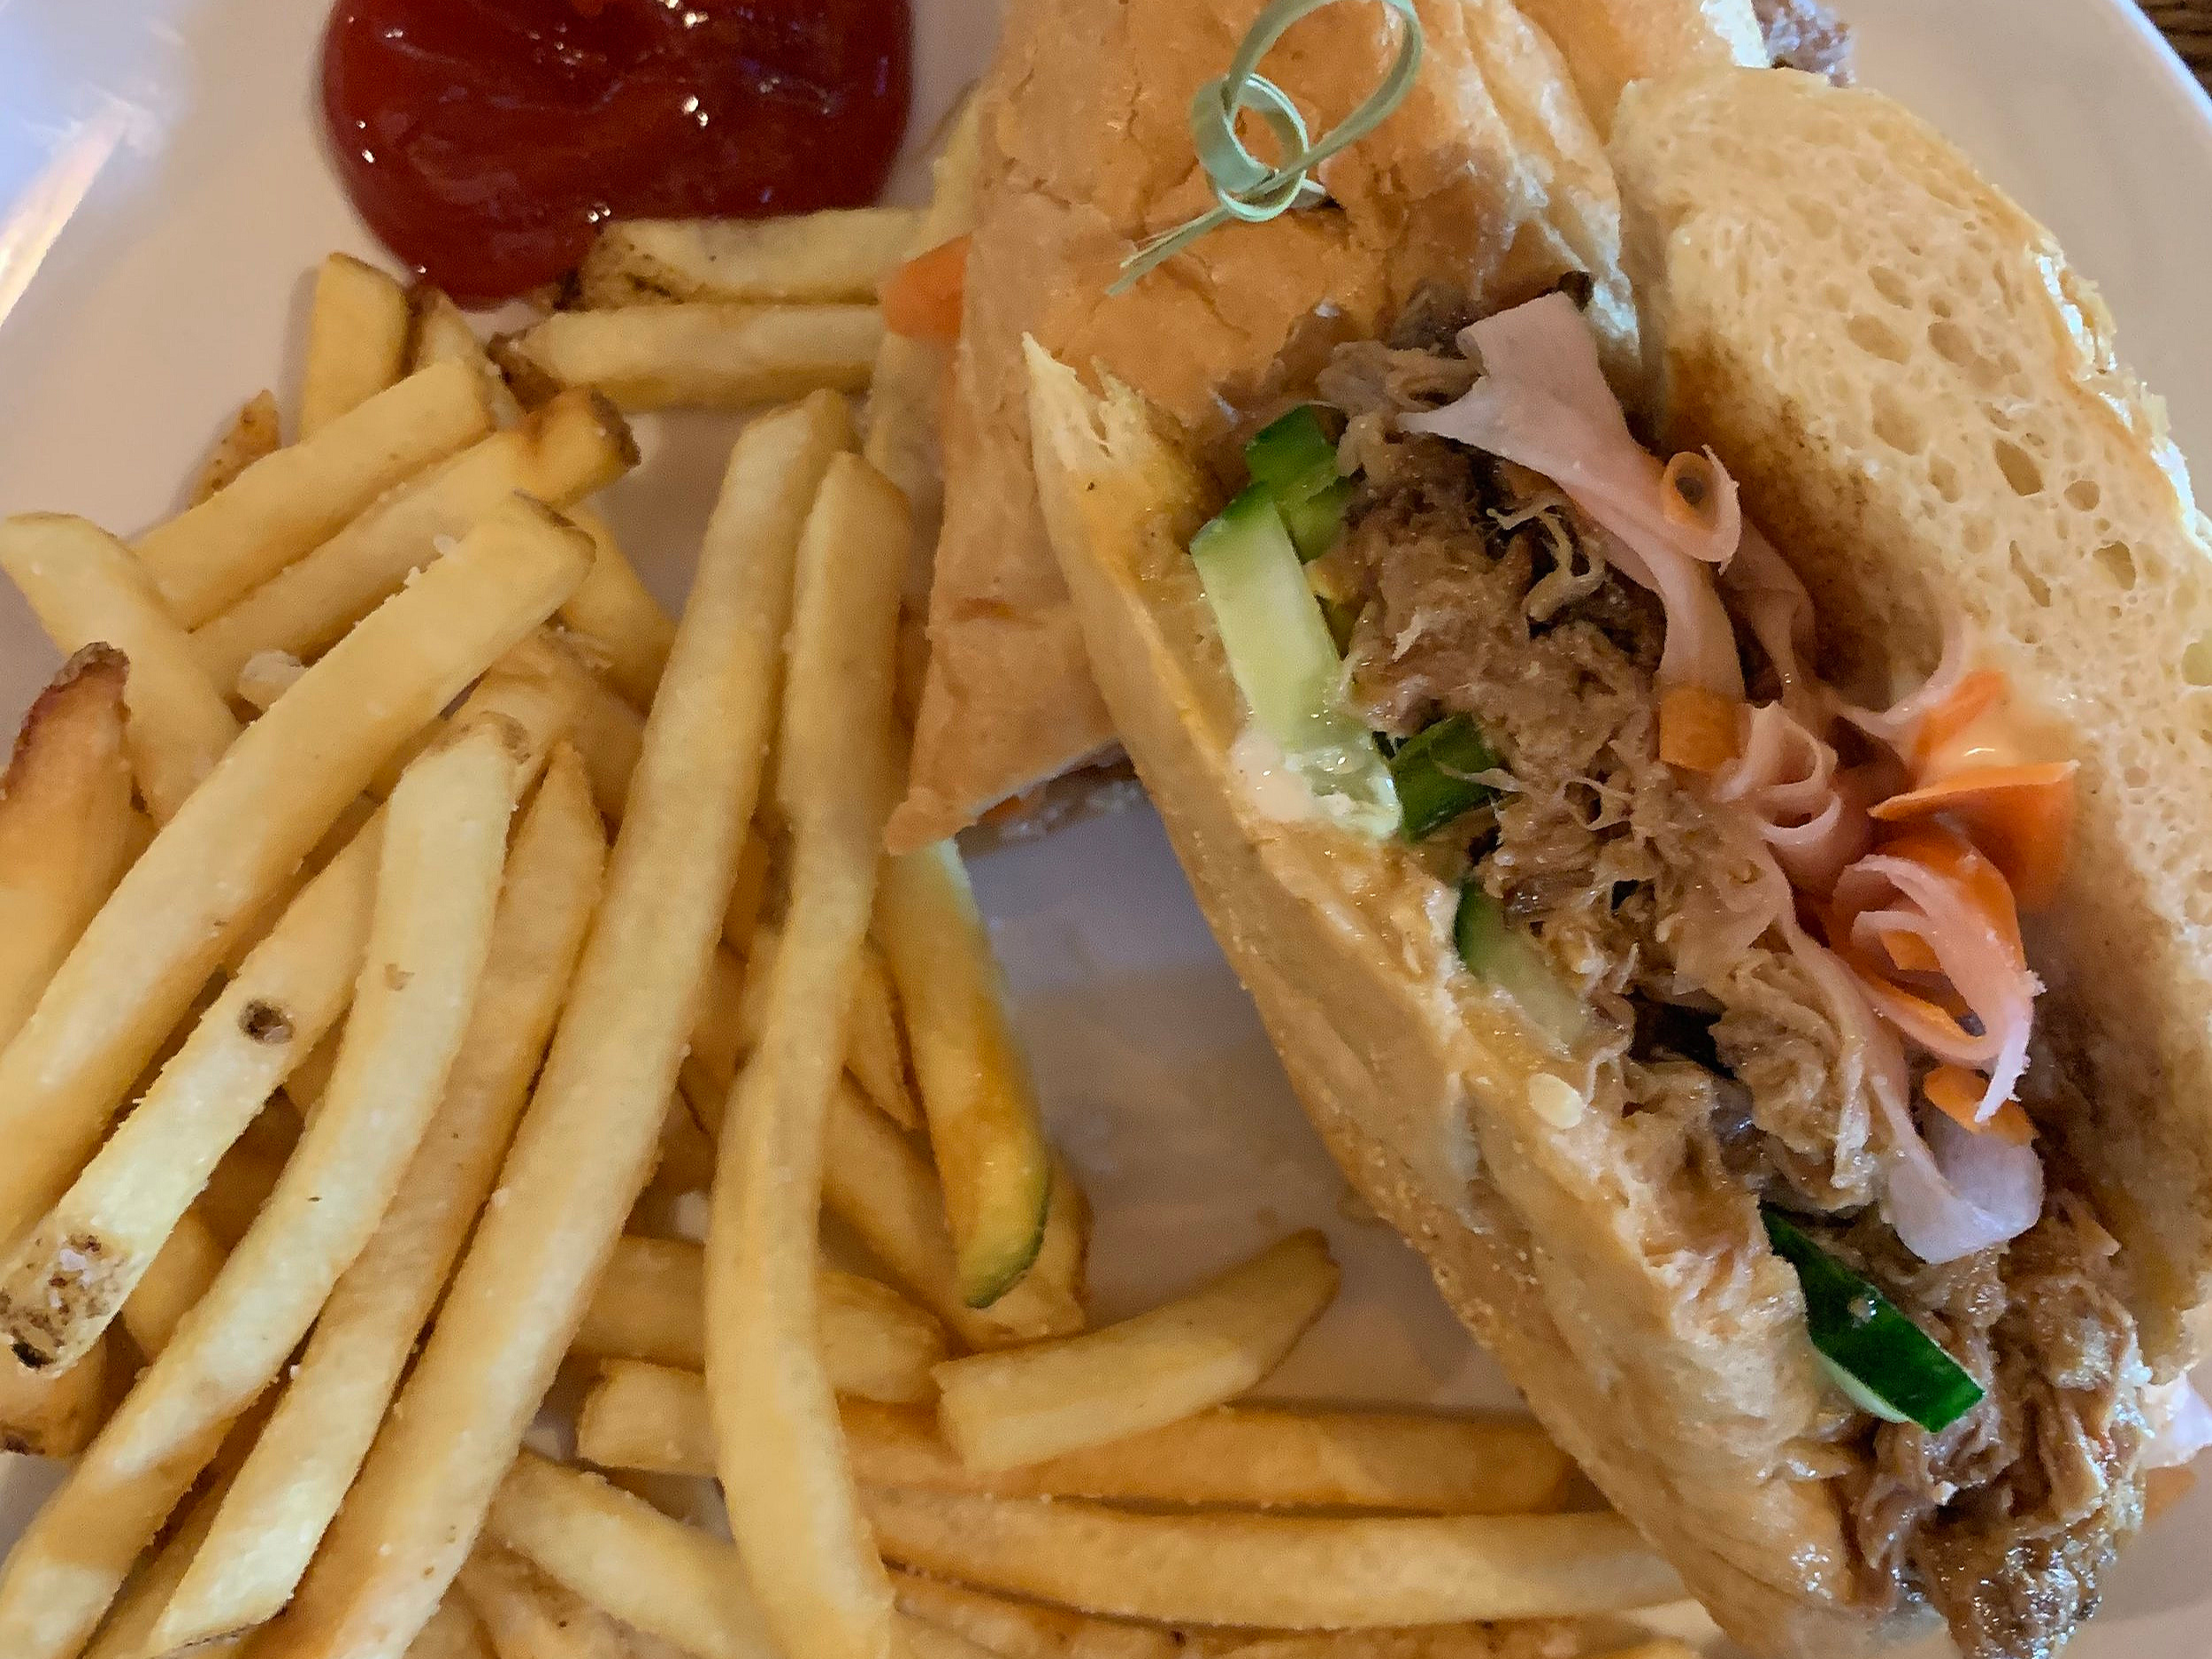 Spicy Bahn Mi sandwich with salty French fries